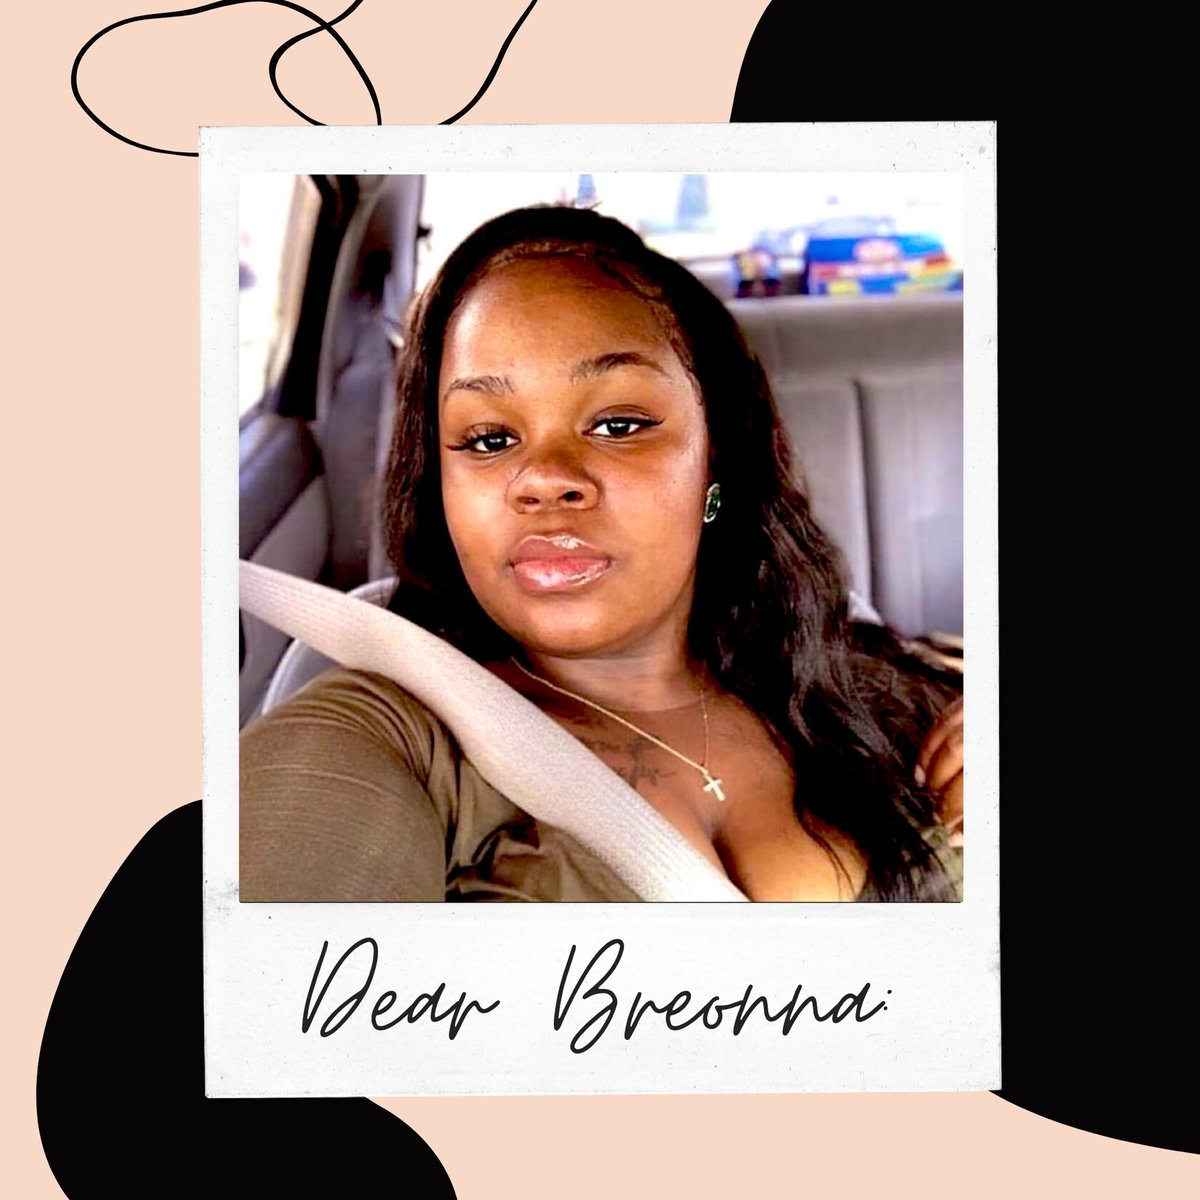 Dear Breonna:  I'm sorry this is taking so long; even more sorrowful that you're not alive.  You should be here.  🖤  There still have been no arrests made for the murder of #BreonnaTaylor. Call 844-298-2731 to demand  #JusticeForBreonna. The officers should be held accountable. https://t.co/M9PqwDKhw5